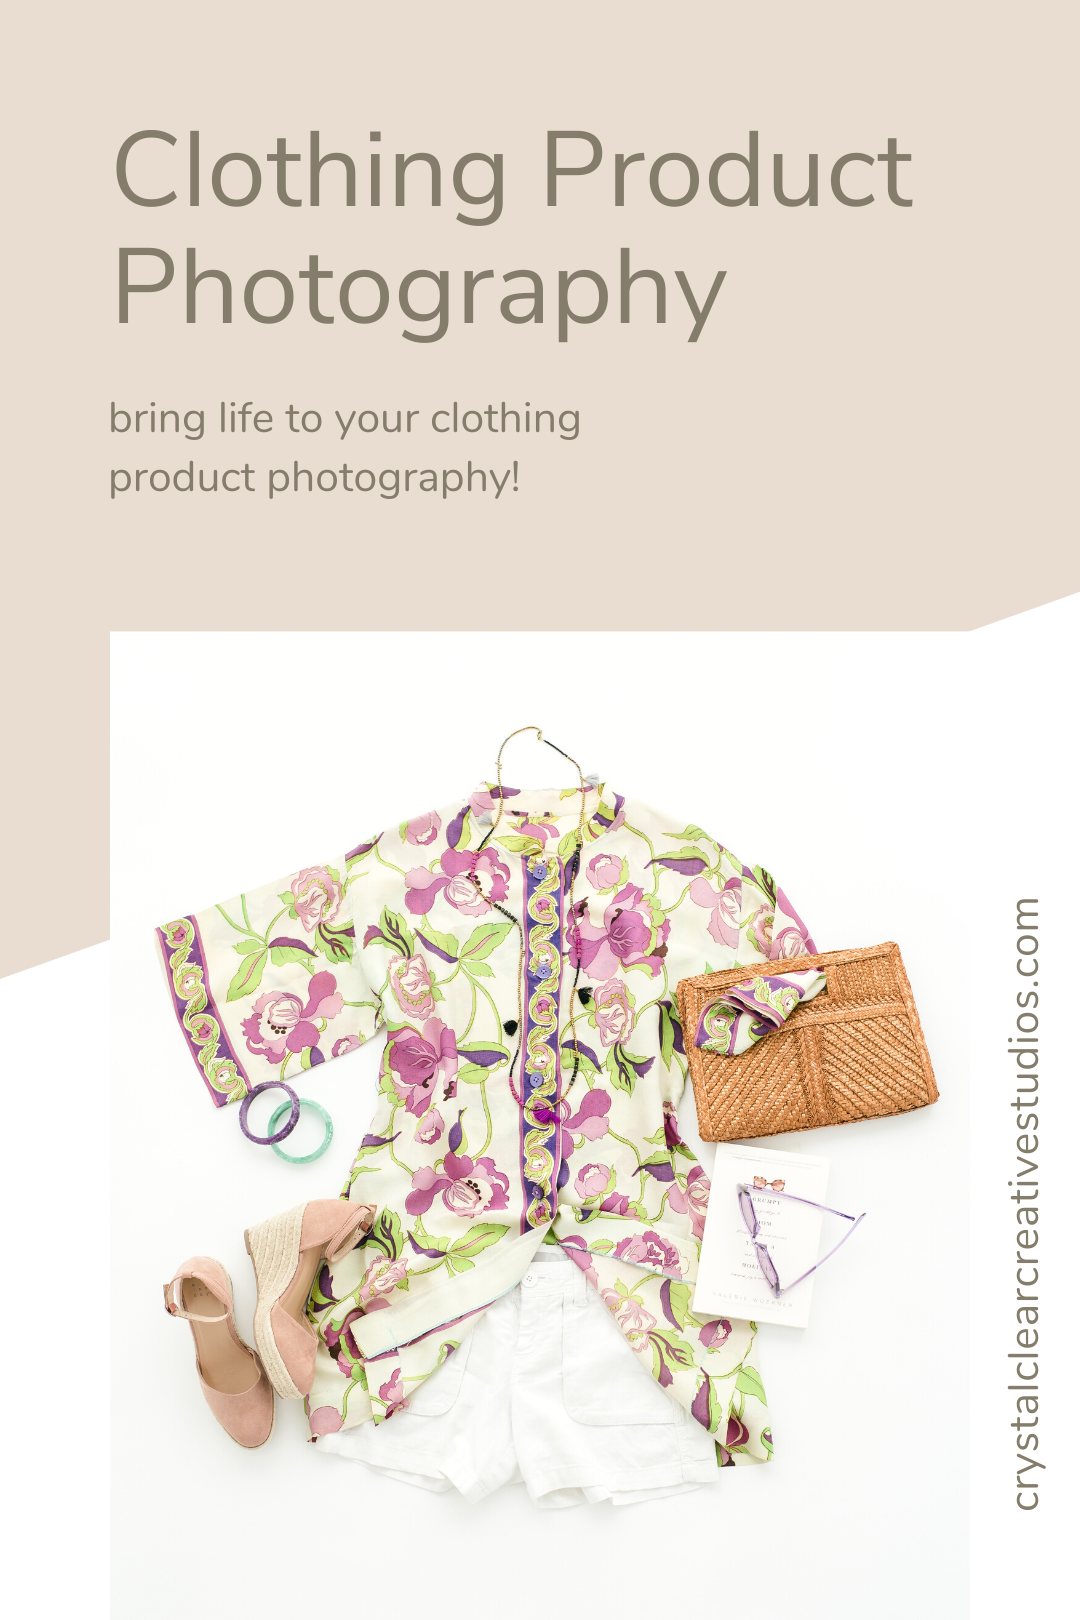 Clothing Product Photography